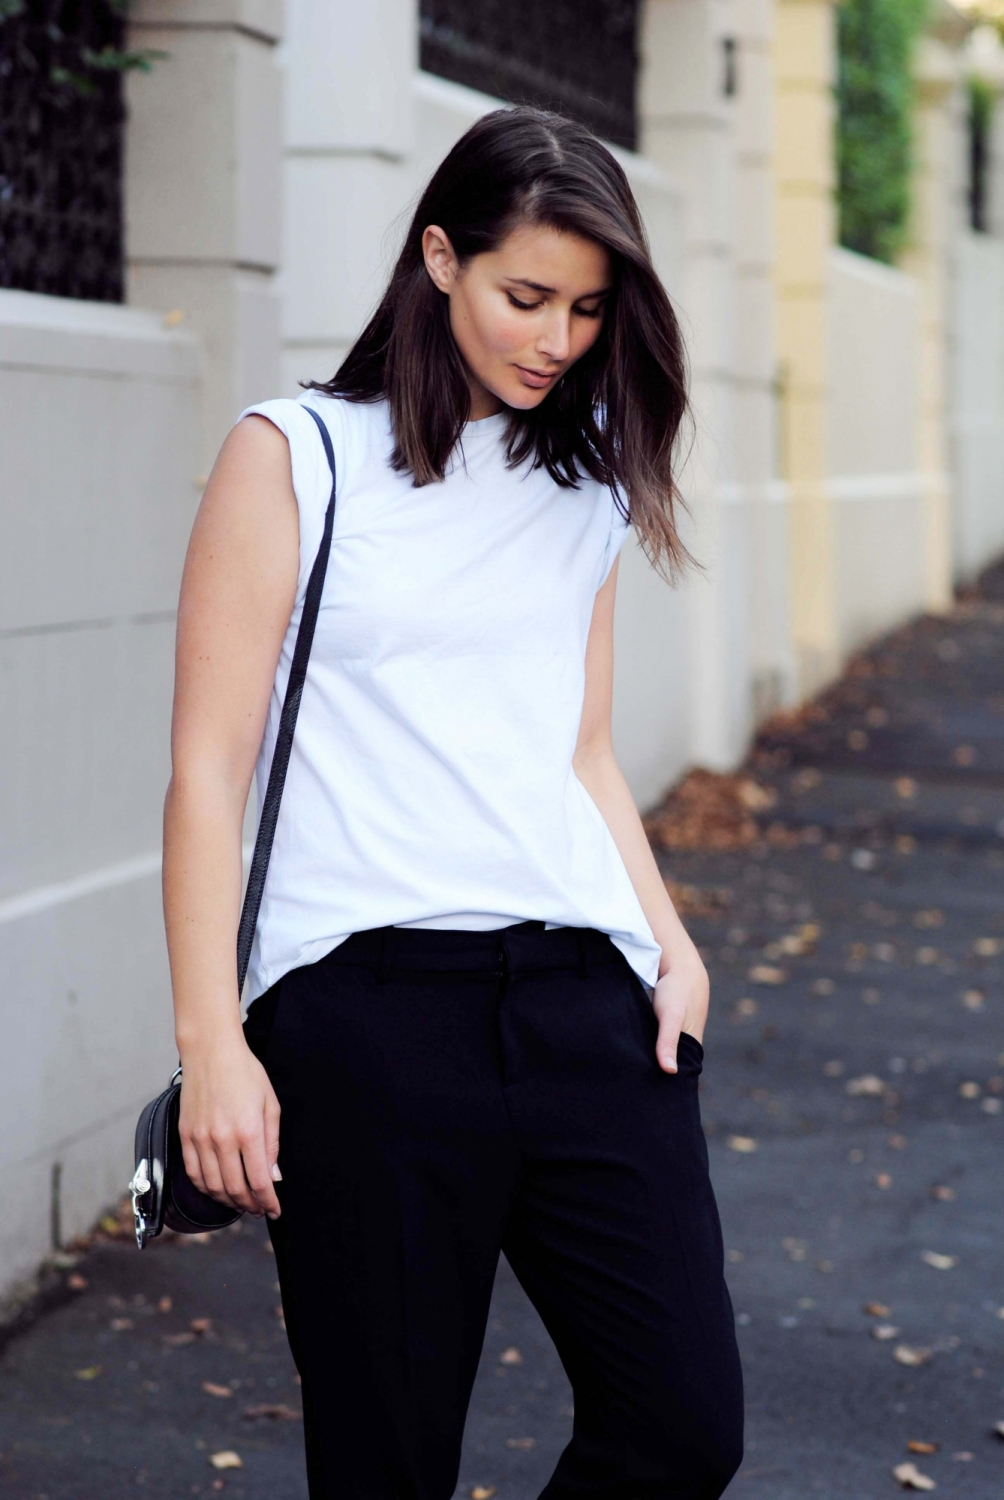 off duty, blogger, trousers, slim fit, white t-shirt, blogger